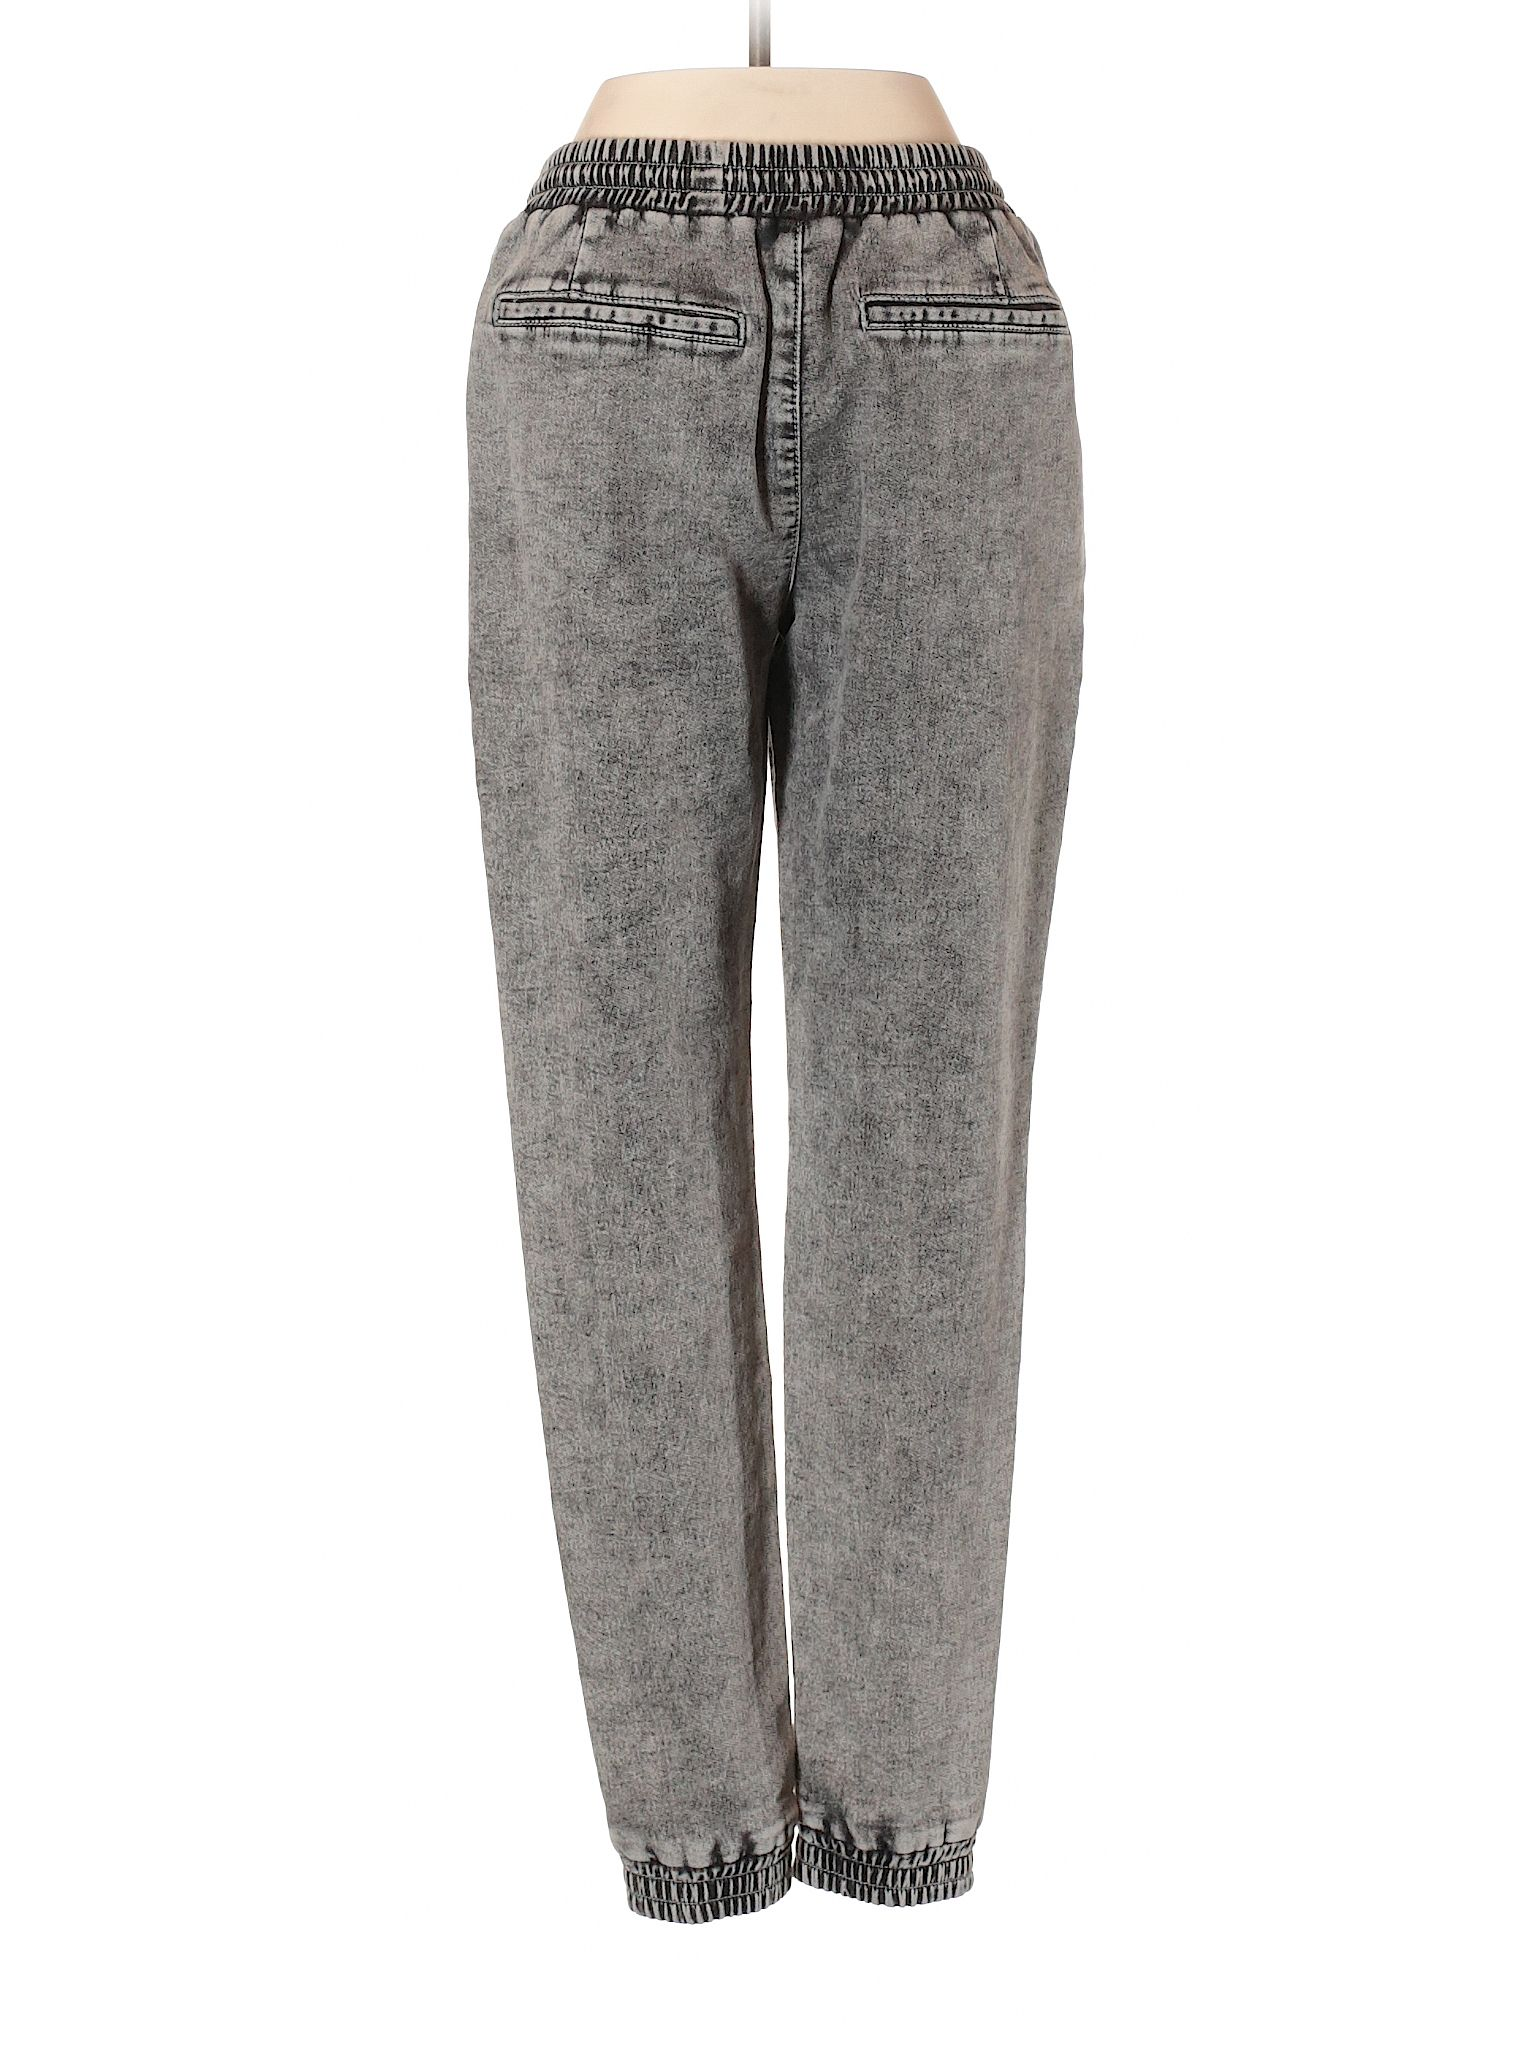 82b204f98f6f1 William Rast Jeggings: Gray Women's Bottoms - New With Tags - 31457796